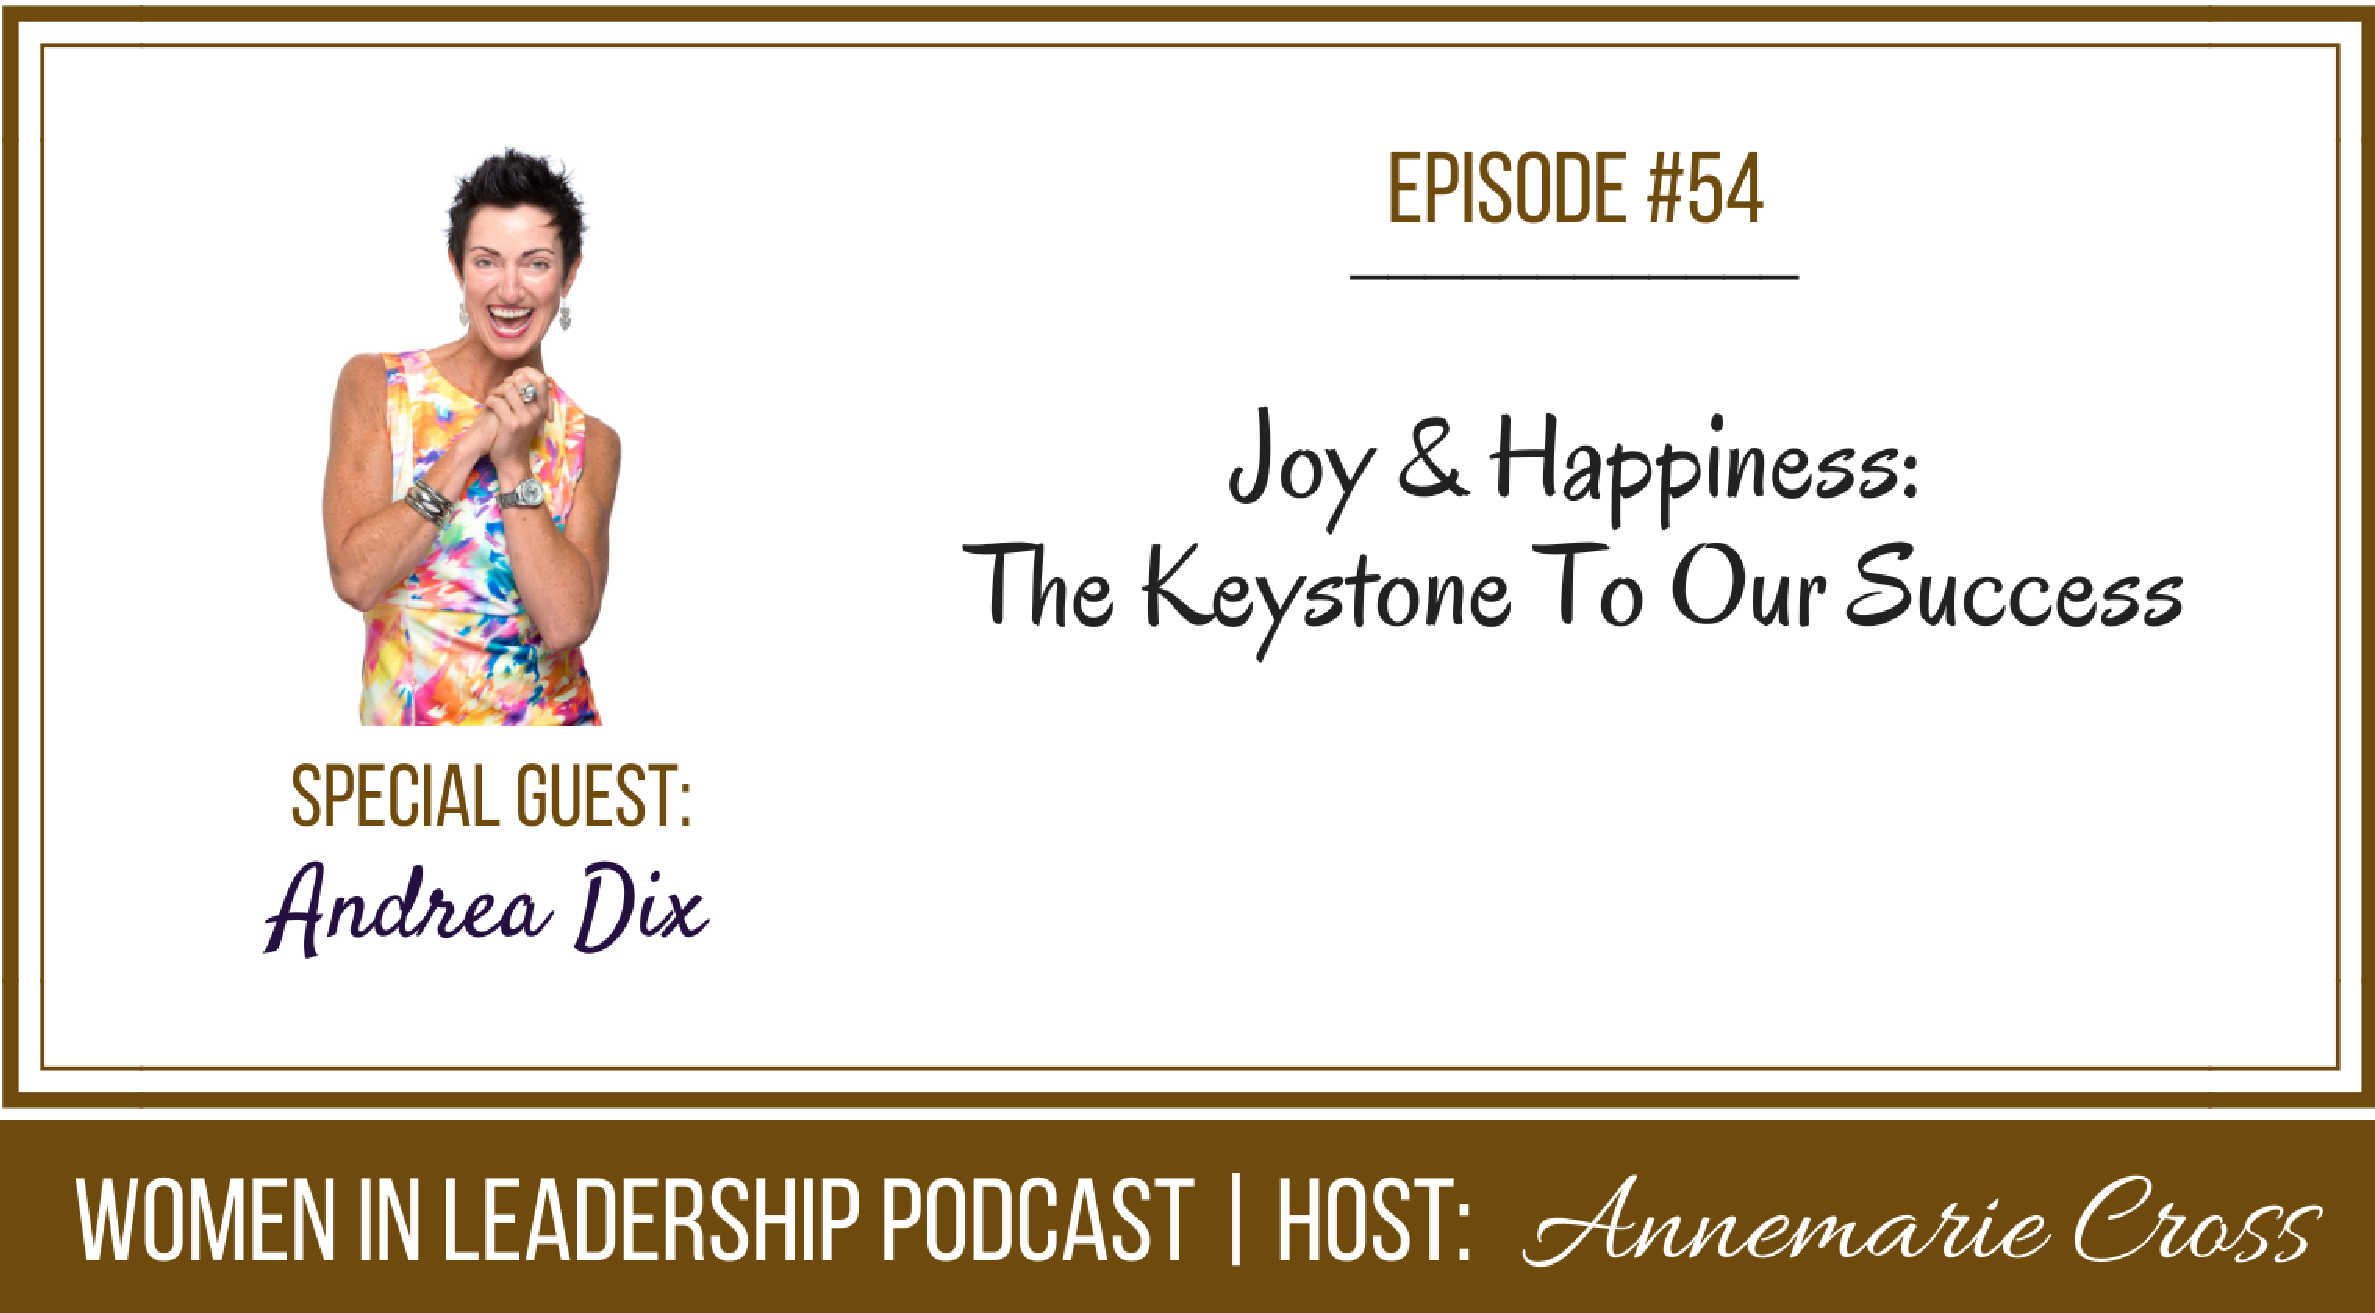 [Ep #54] Joy & Happiness: The Keystone To Our Success